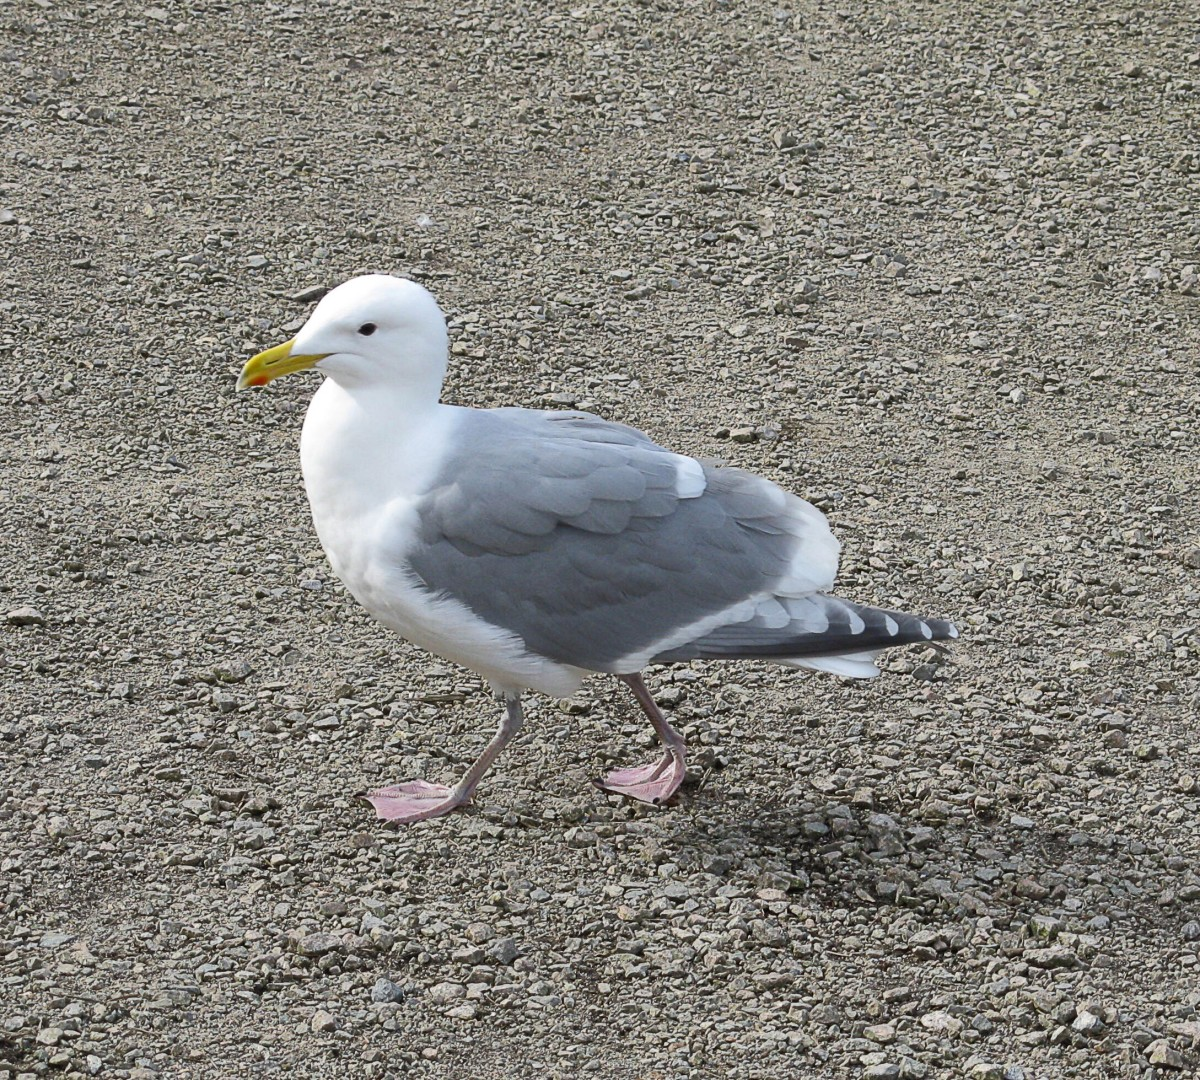 This bird at Lost Lagoon may be a glaucous-winged gull/western gull hybrid, since its wing tips are dark grey instead of medium grey.